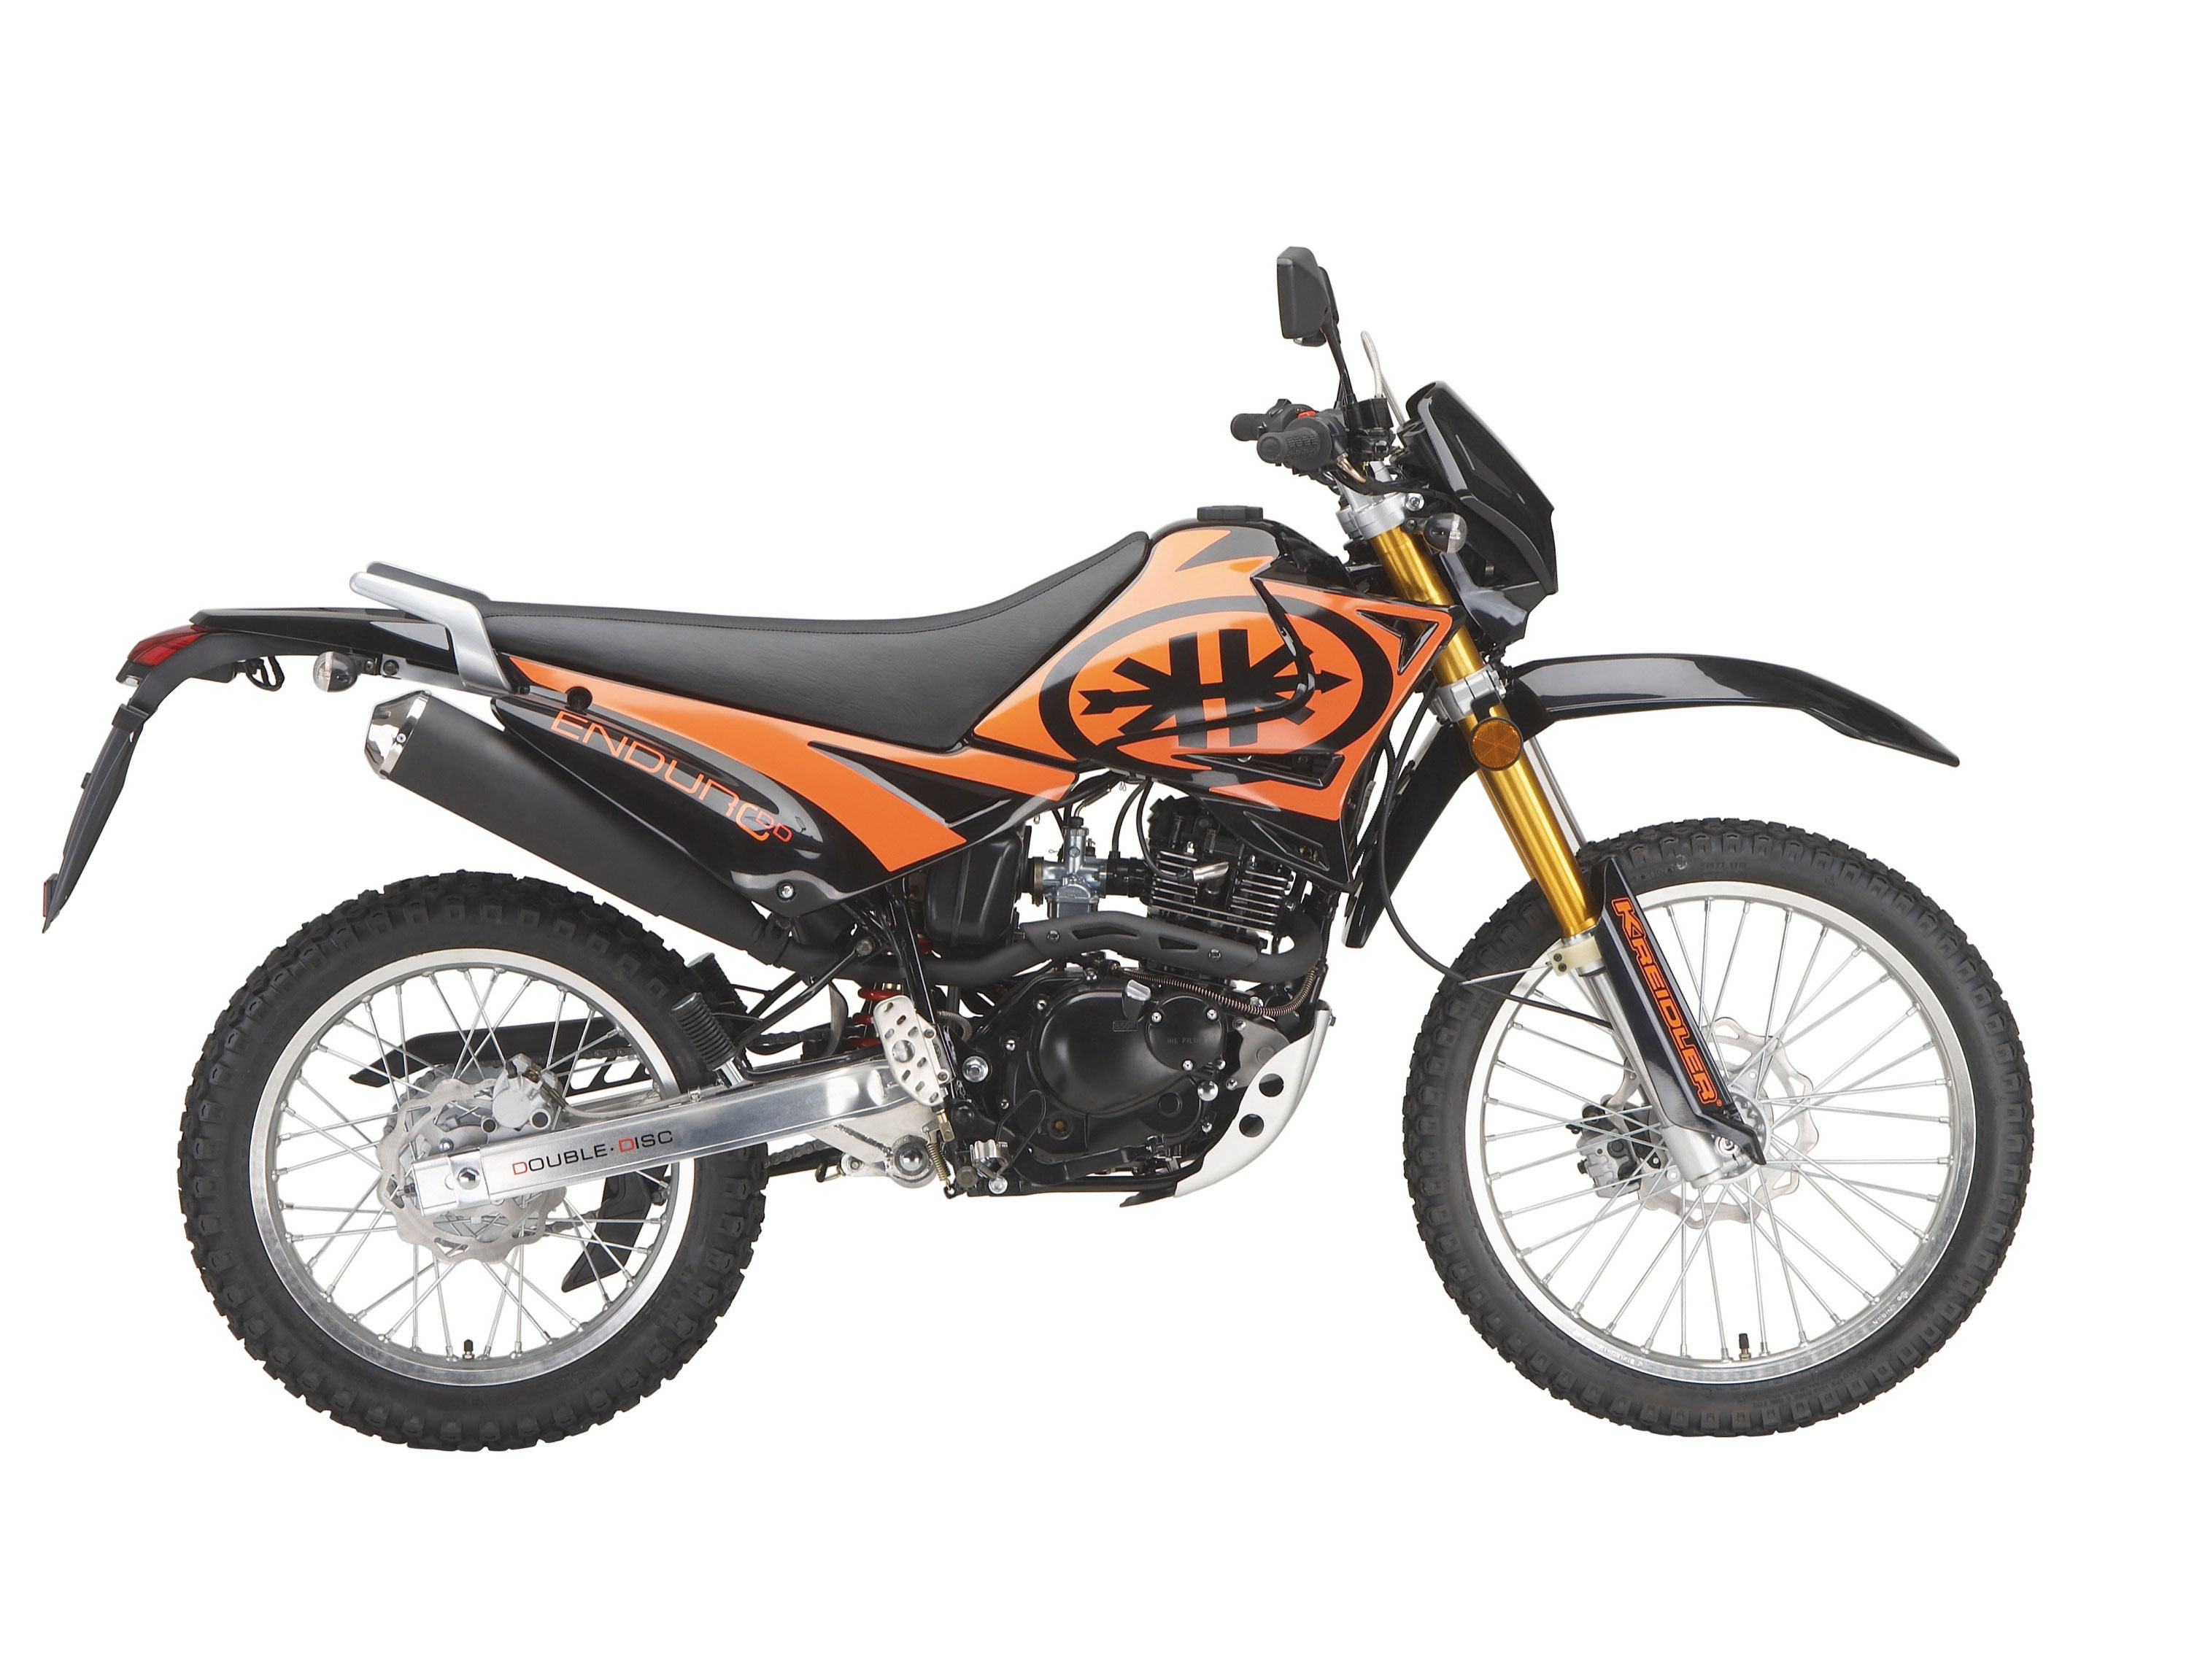 2010 kreidler enduro 125 dd moto zombdrive com. Black Bedroom Furniture Sets. Home Design Ideas